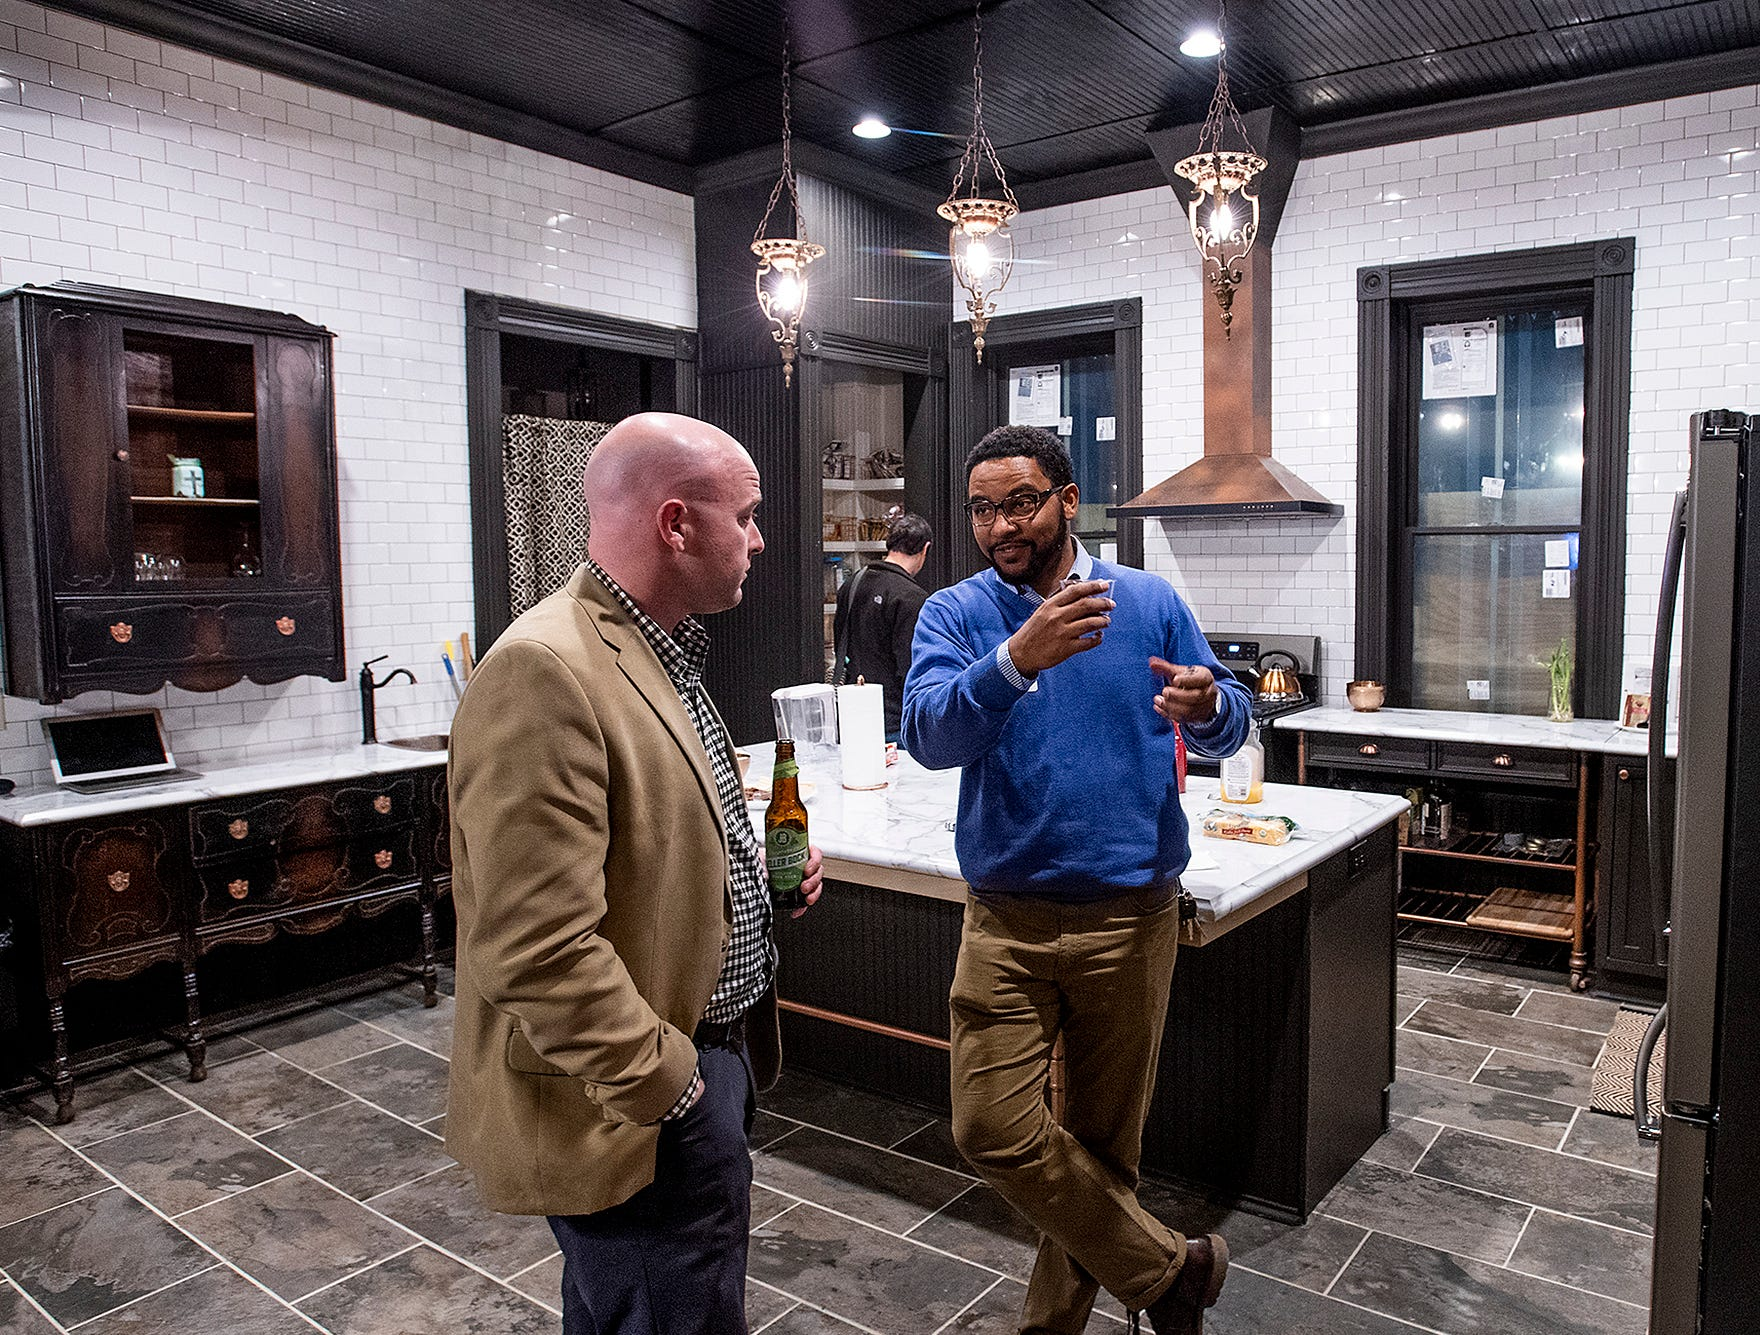 Justin Hampton chats in the kitchen of his home on Goldthwaite St. in Montgomery, Ala., as it is opened for a Landmarks Foundation Renovators Open House on Thursday evening January 31, 2019.